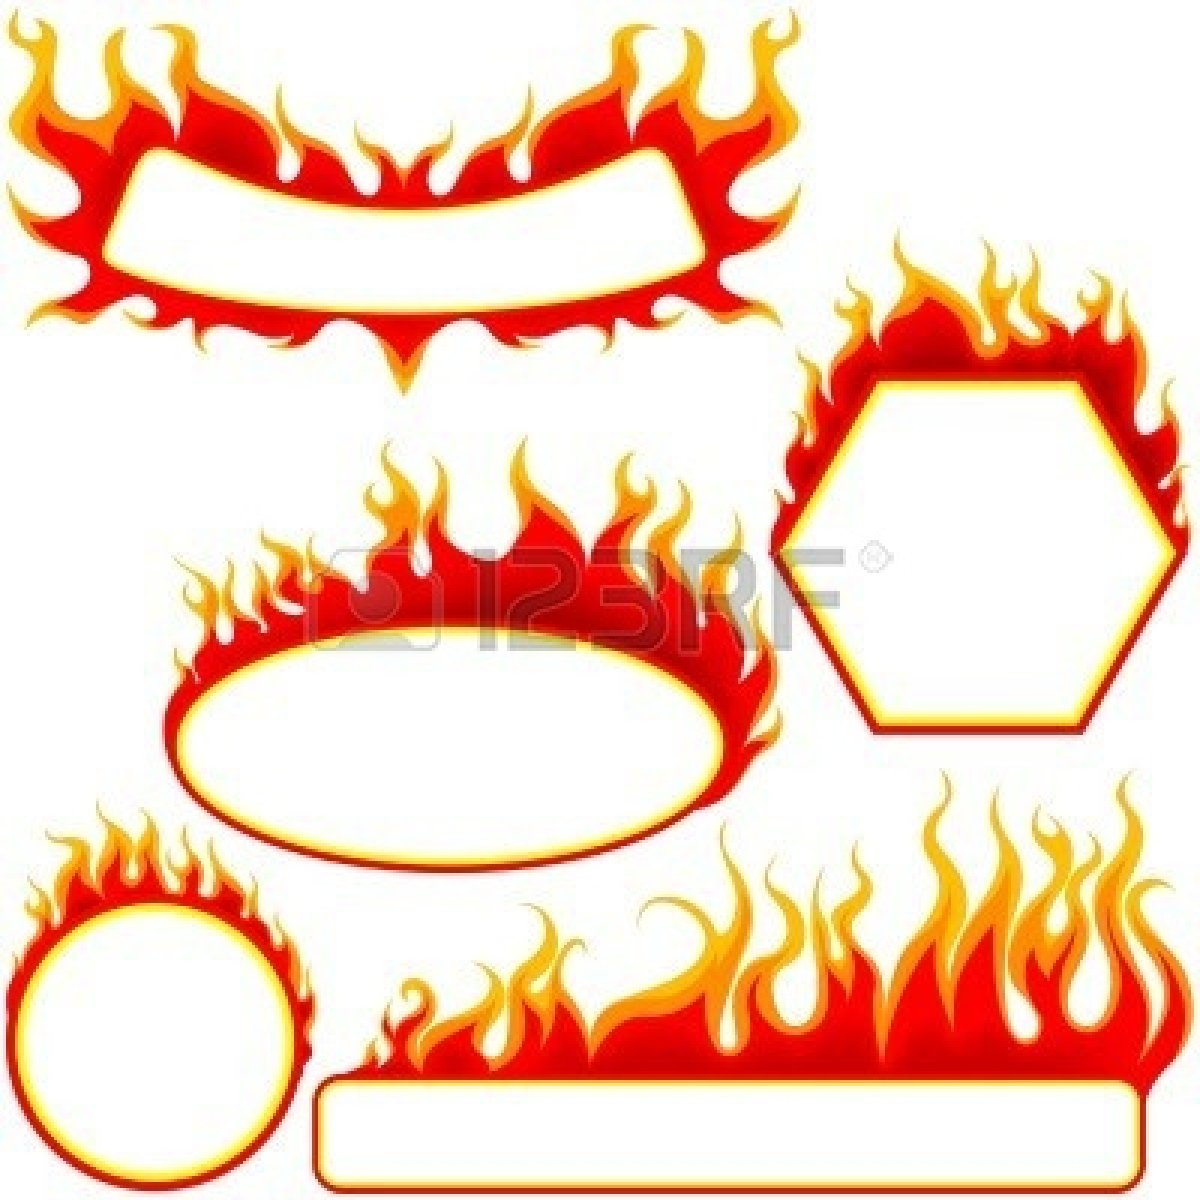 Flame circle outline clipart.